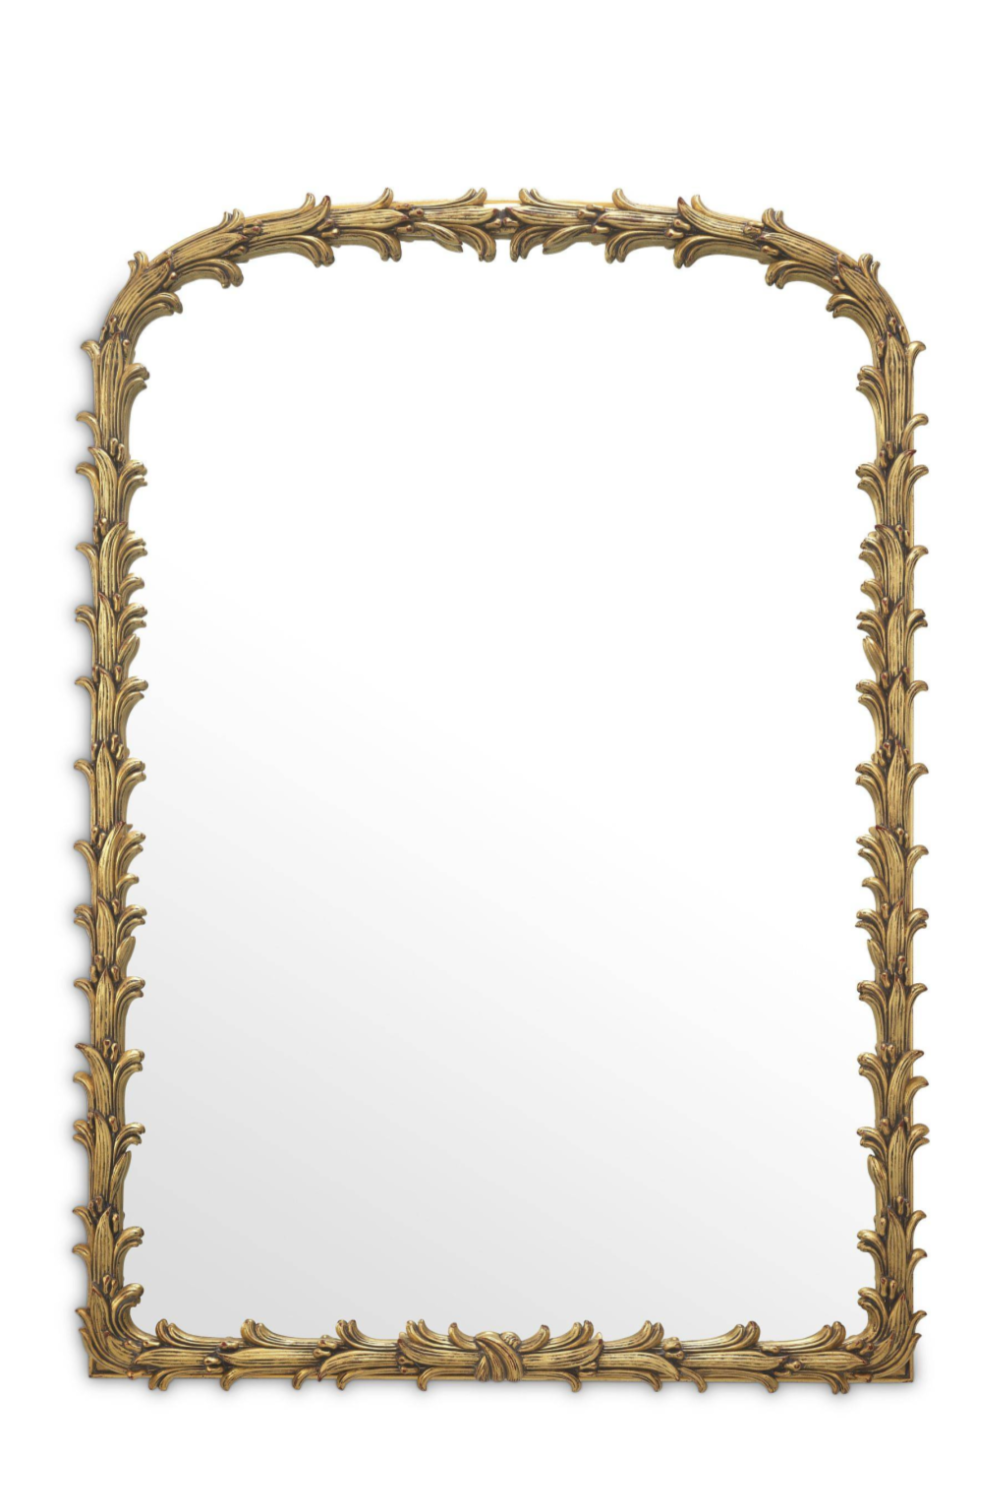 Antique Gold Framed Mirror | Eichholtz Guinevere